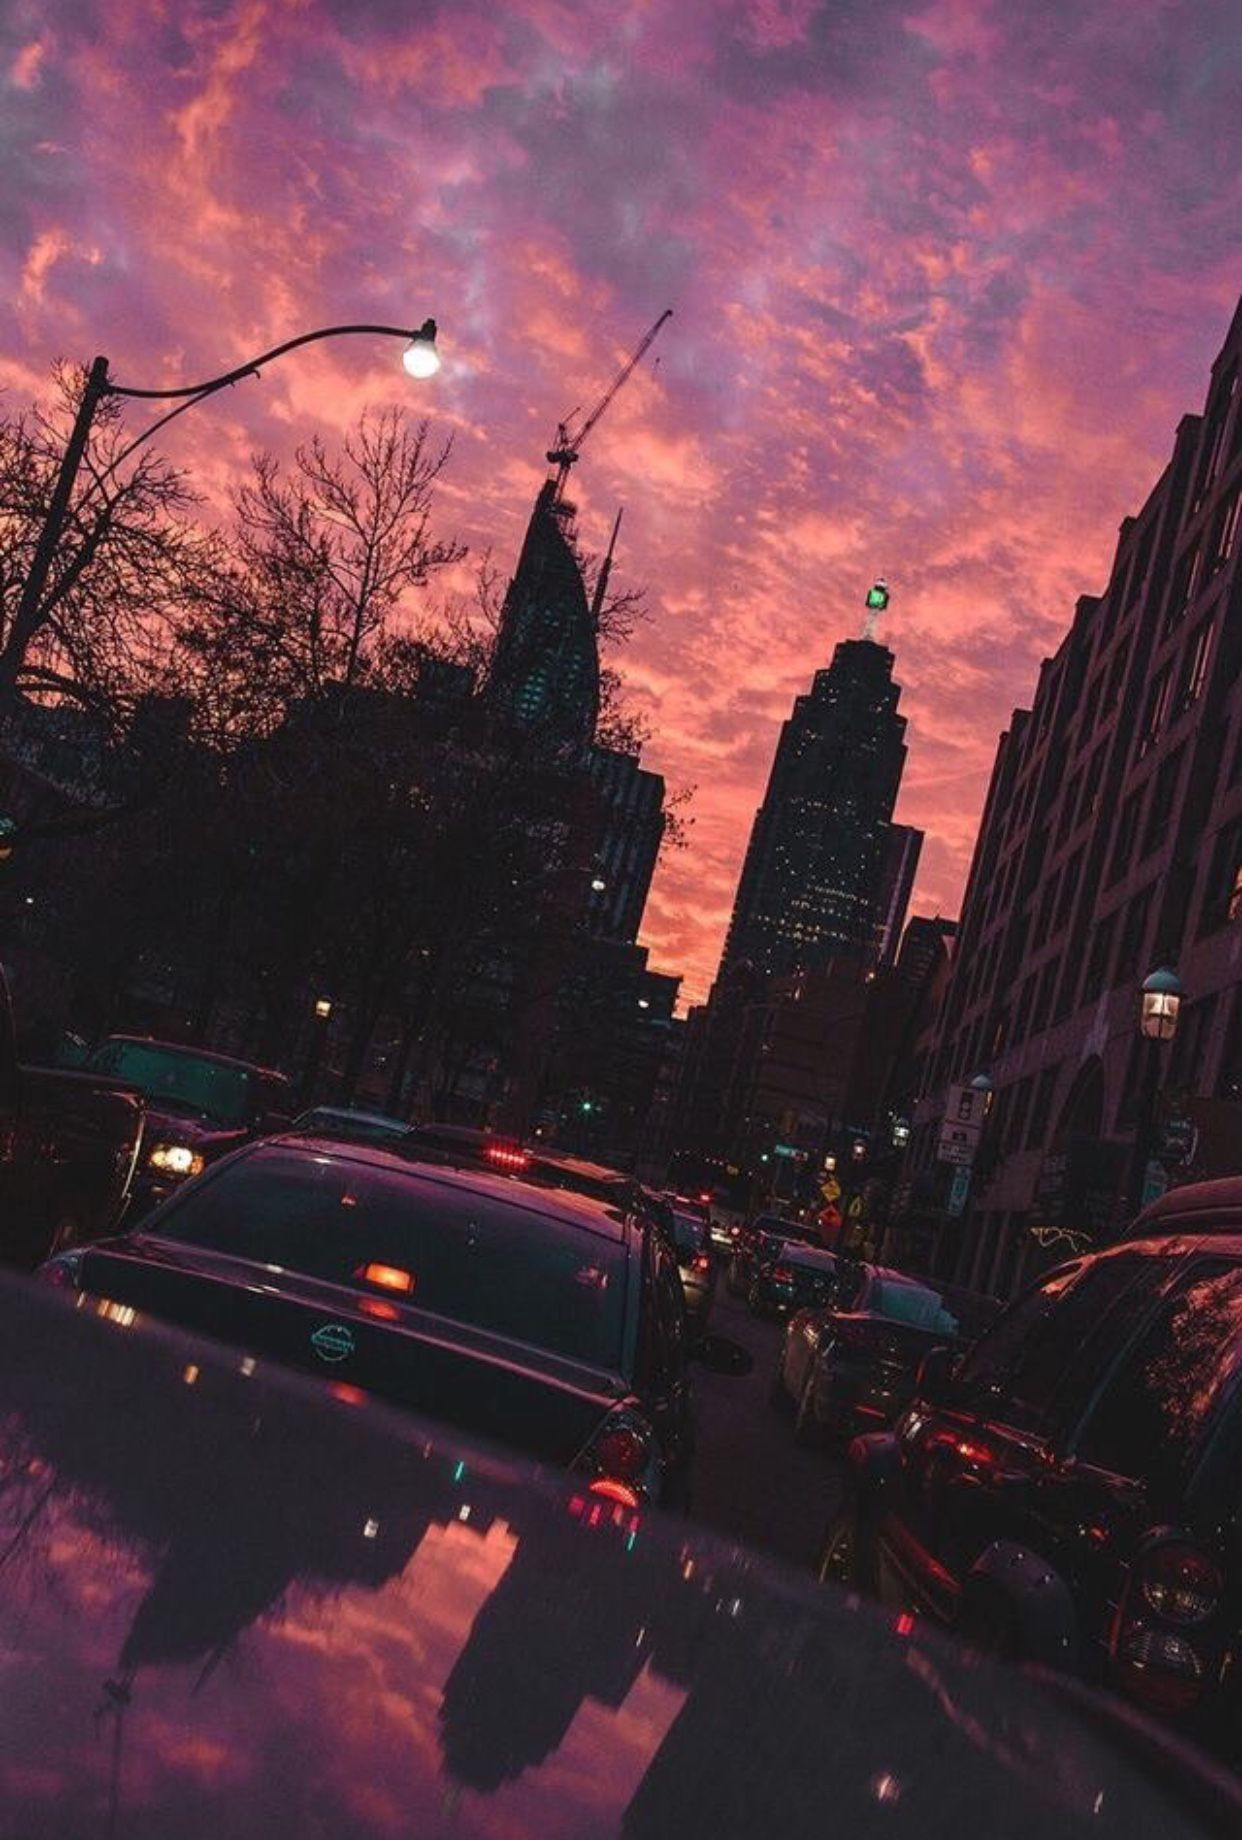 Aesthetic Sunset Iphone Wallpapers Top Free Aesthetic